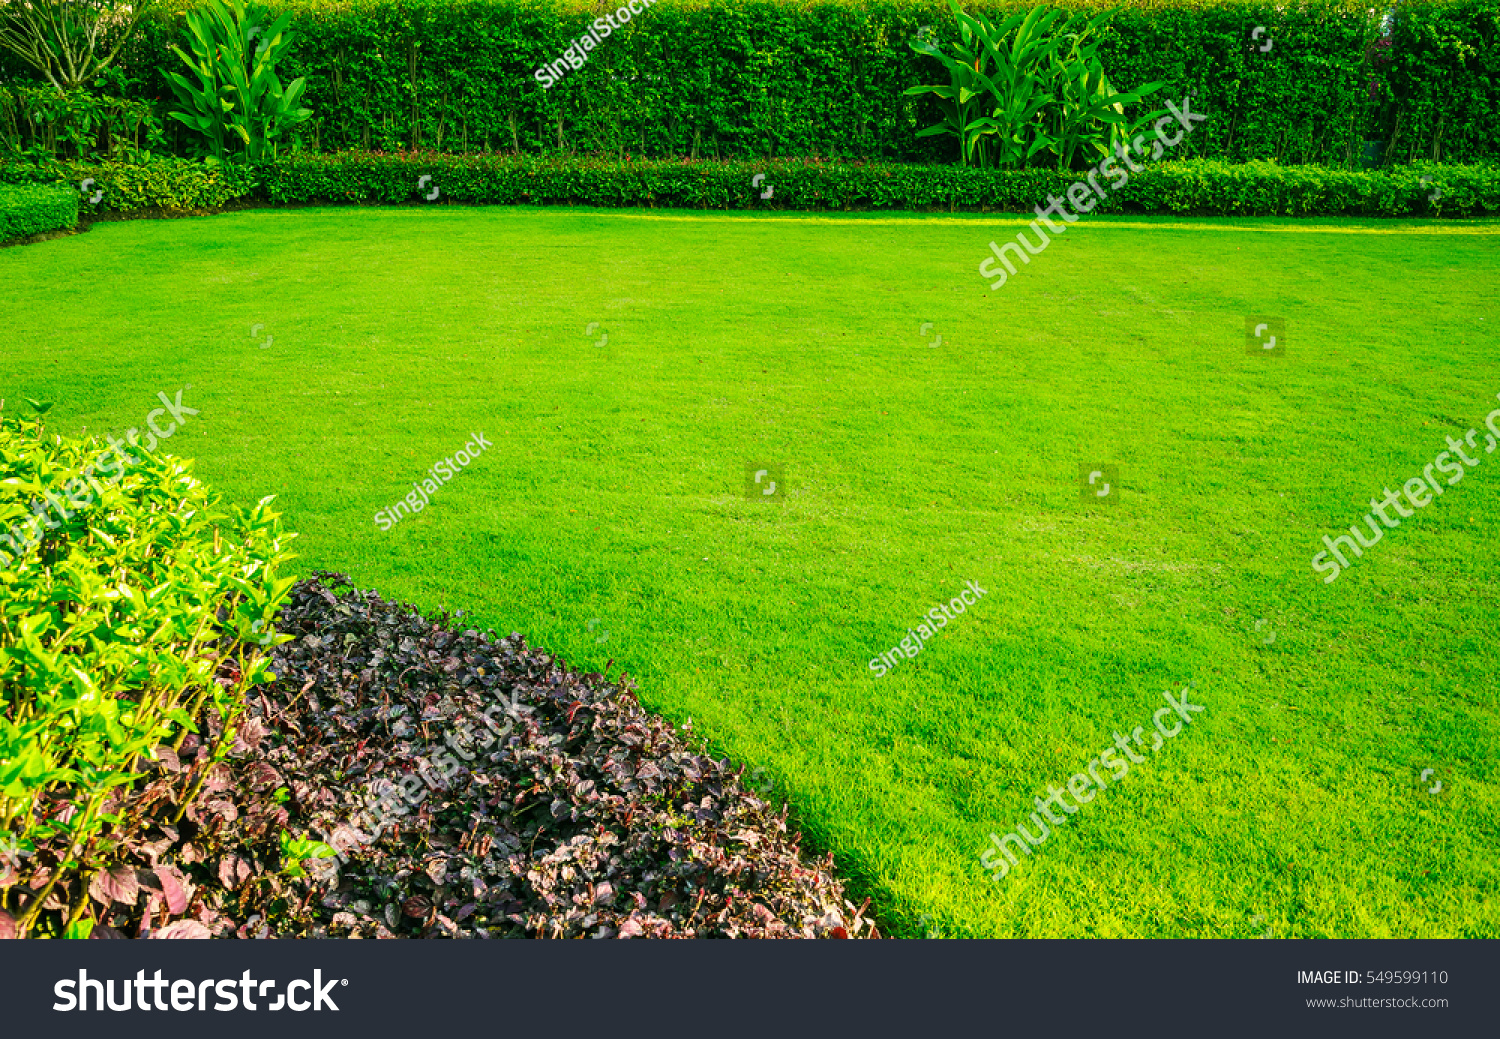 Green lawngarden landscape design stock photo 549599110 for Green landscape design